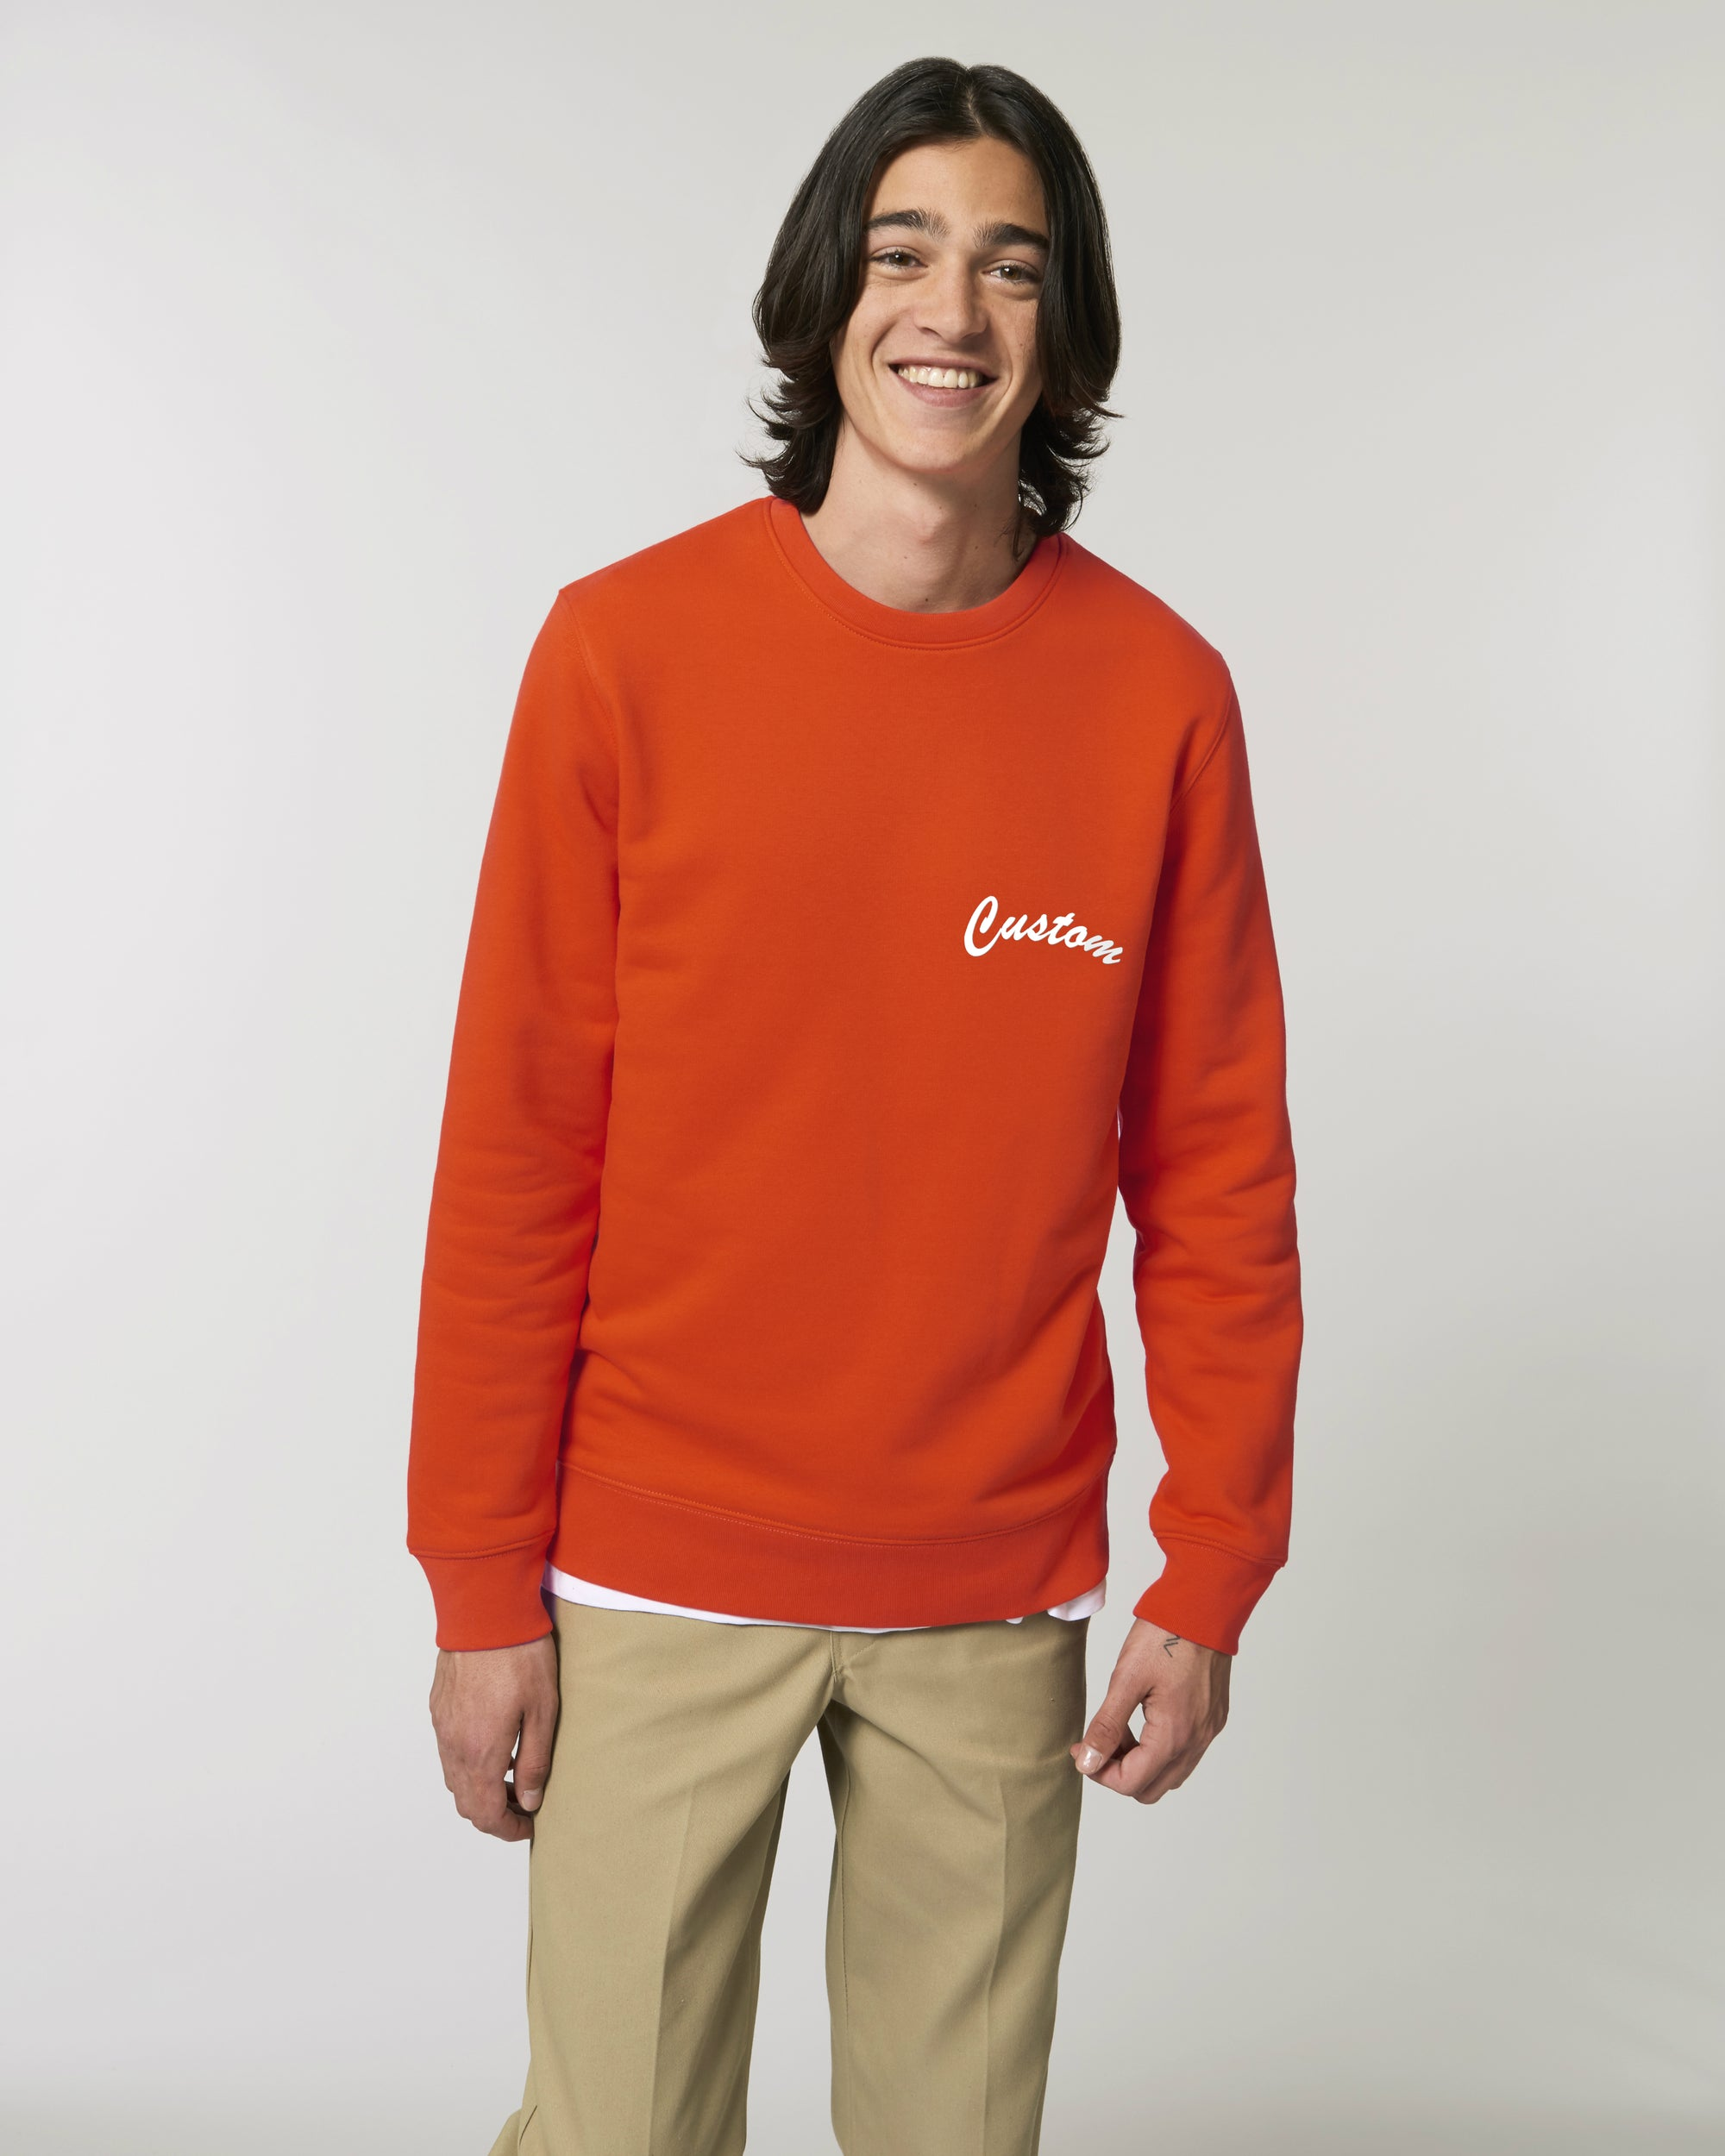 MEN'S ORGANIC COTTON CREW NECK SWEATSHIRT - customisable left chest embroidery